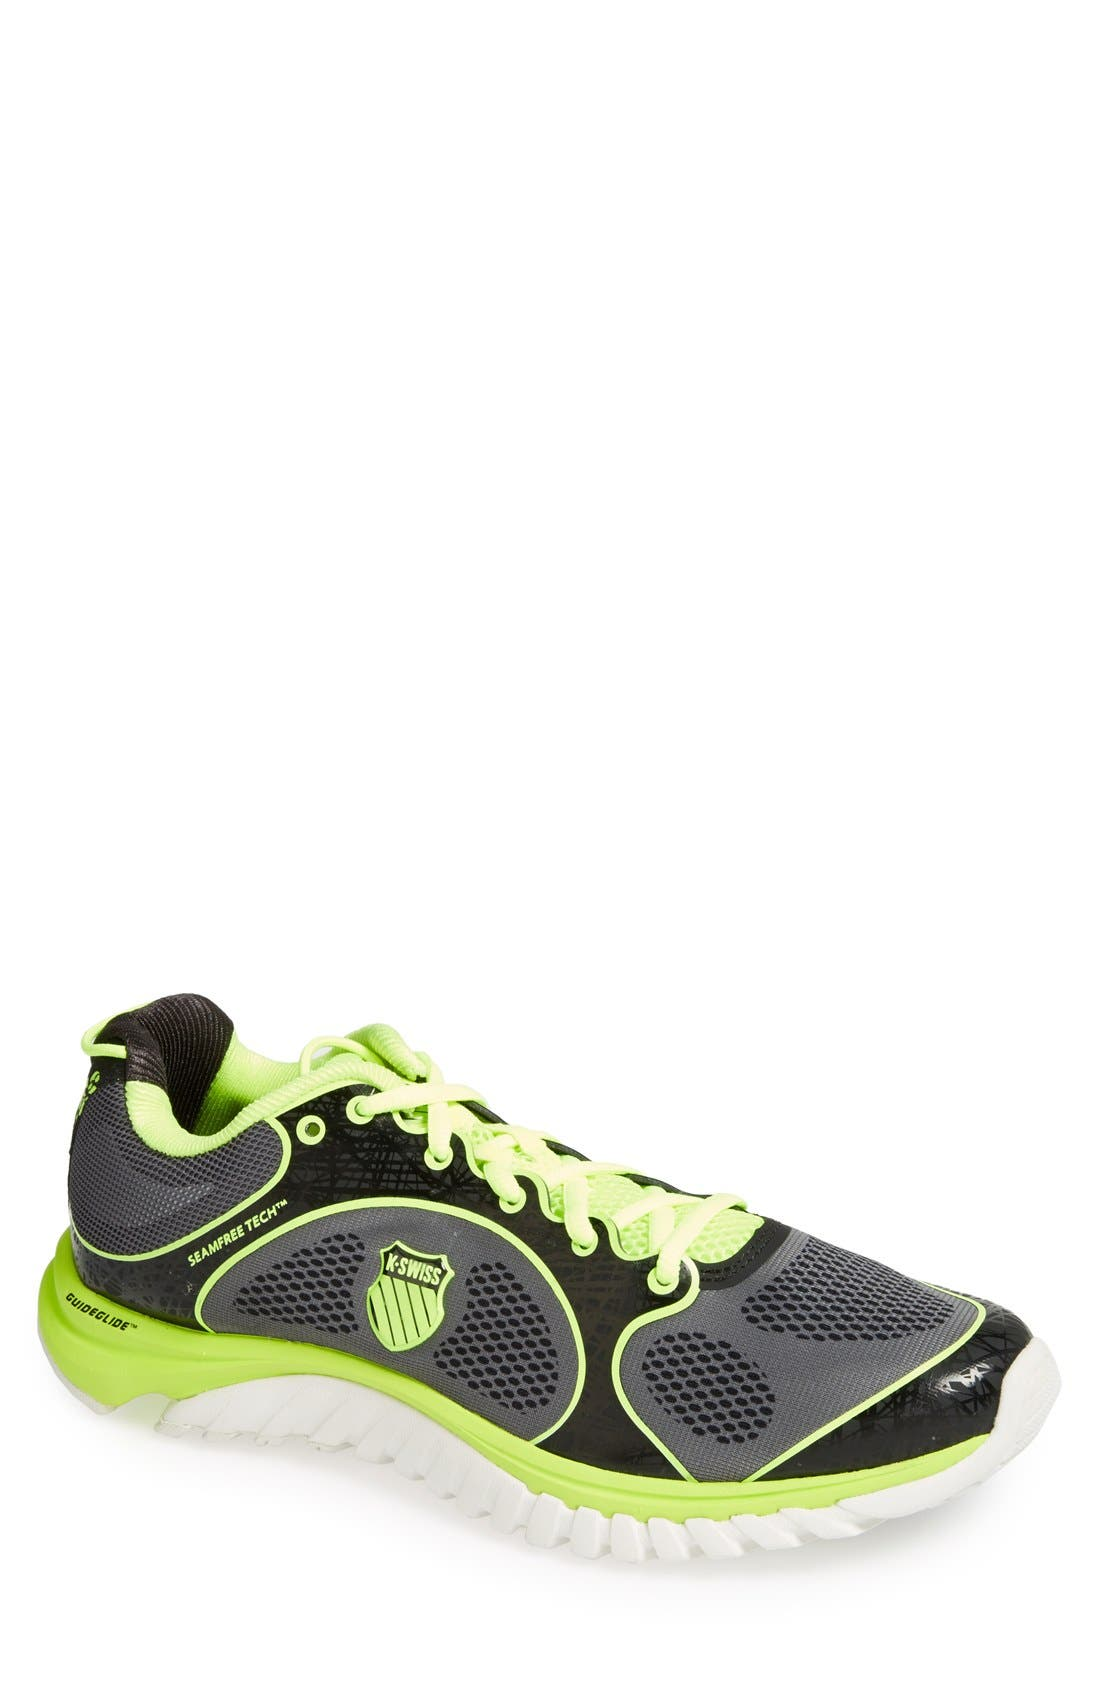 Main Image - K-Swiss 'KBL 2 Neutral' Running Shoe (Men)